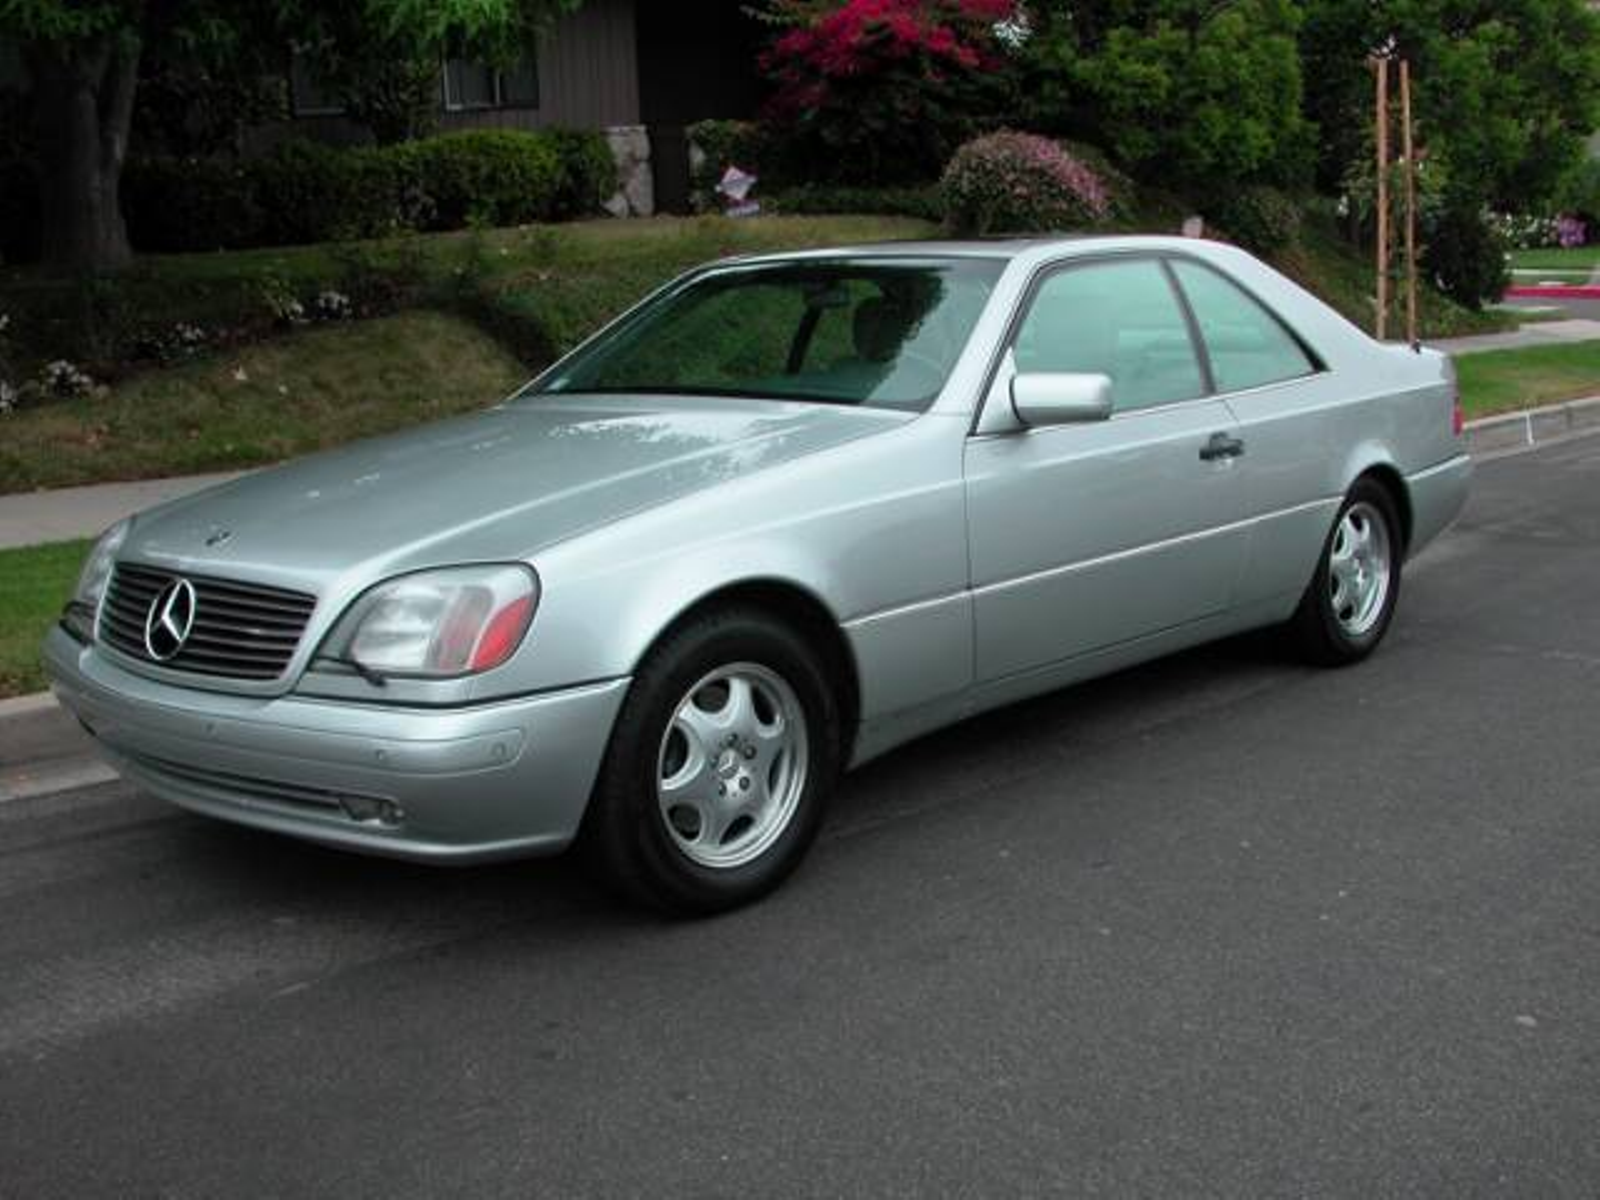 1999 mercedes benz cl500 cl class stunning californian city california auto fitness class benz. Black Bedroom Furniture Sets. Home Design Ideas